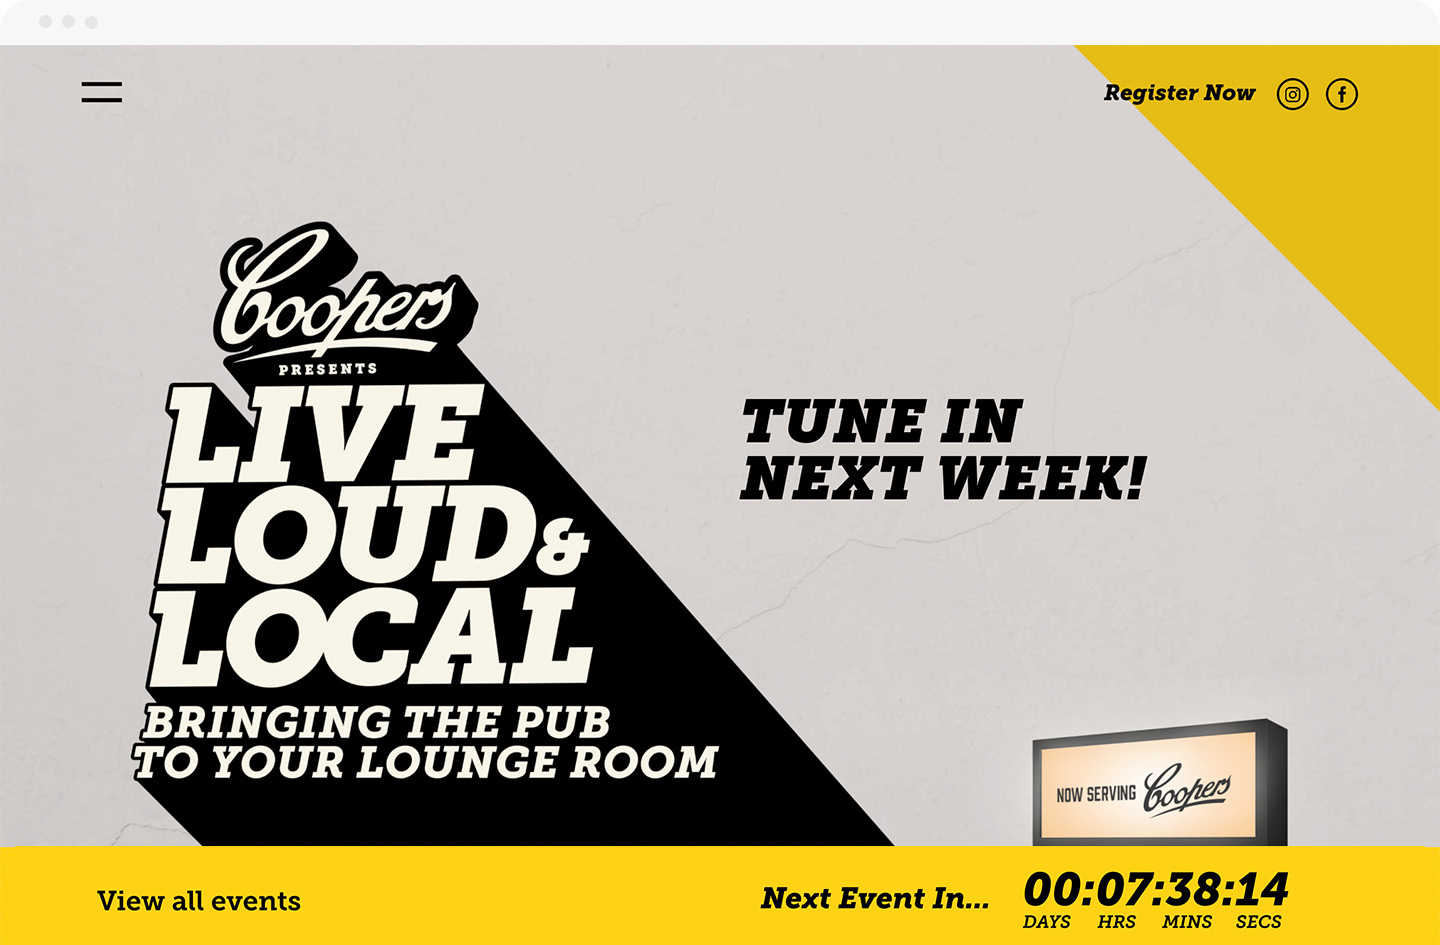 Rock Agency - Projects - Coopers Live Loud & Local - Desktop - Homepage